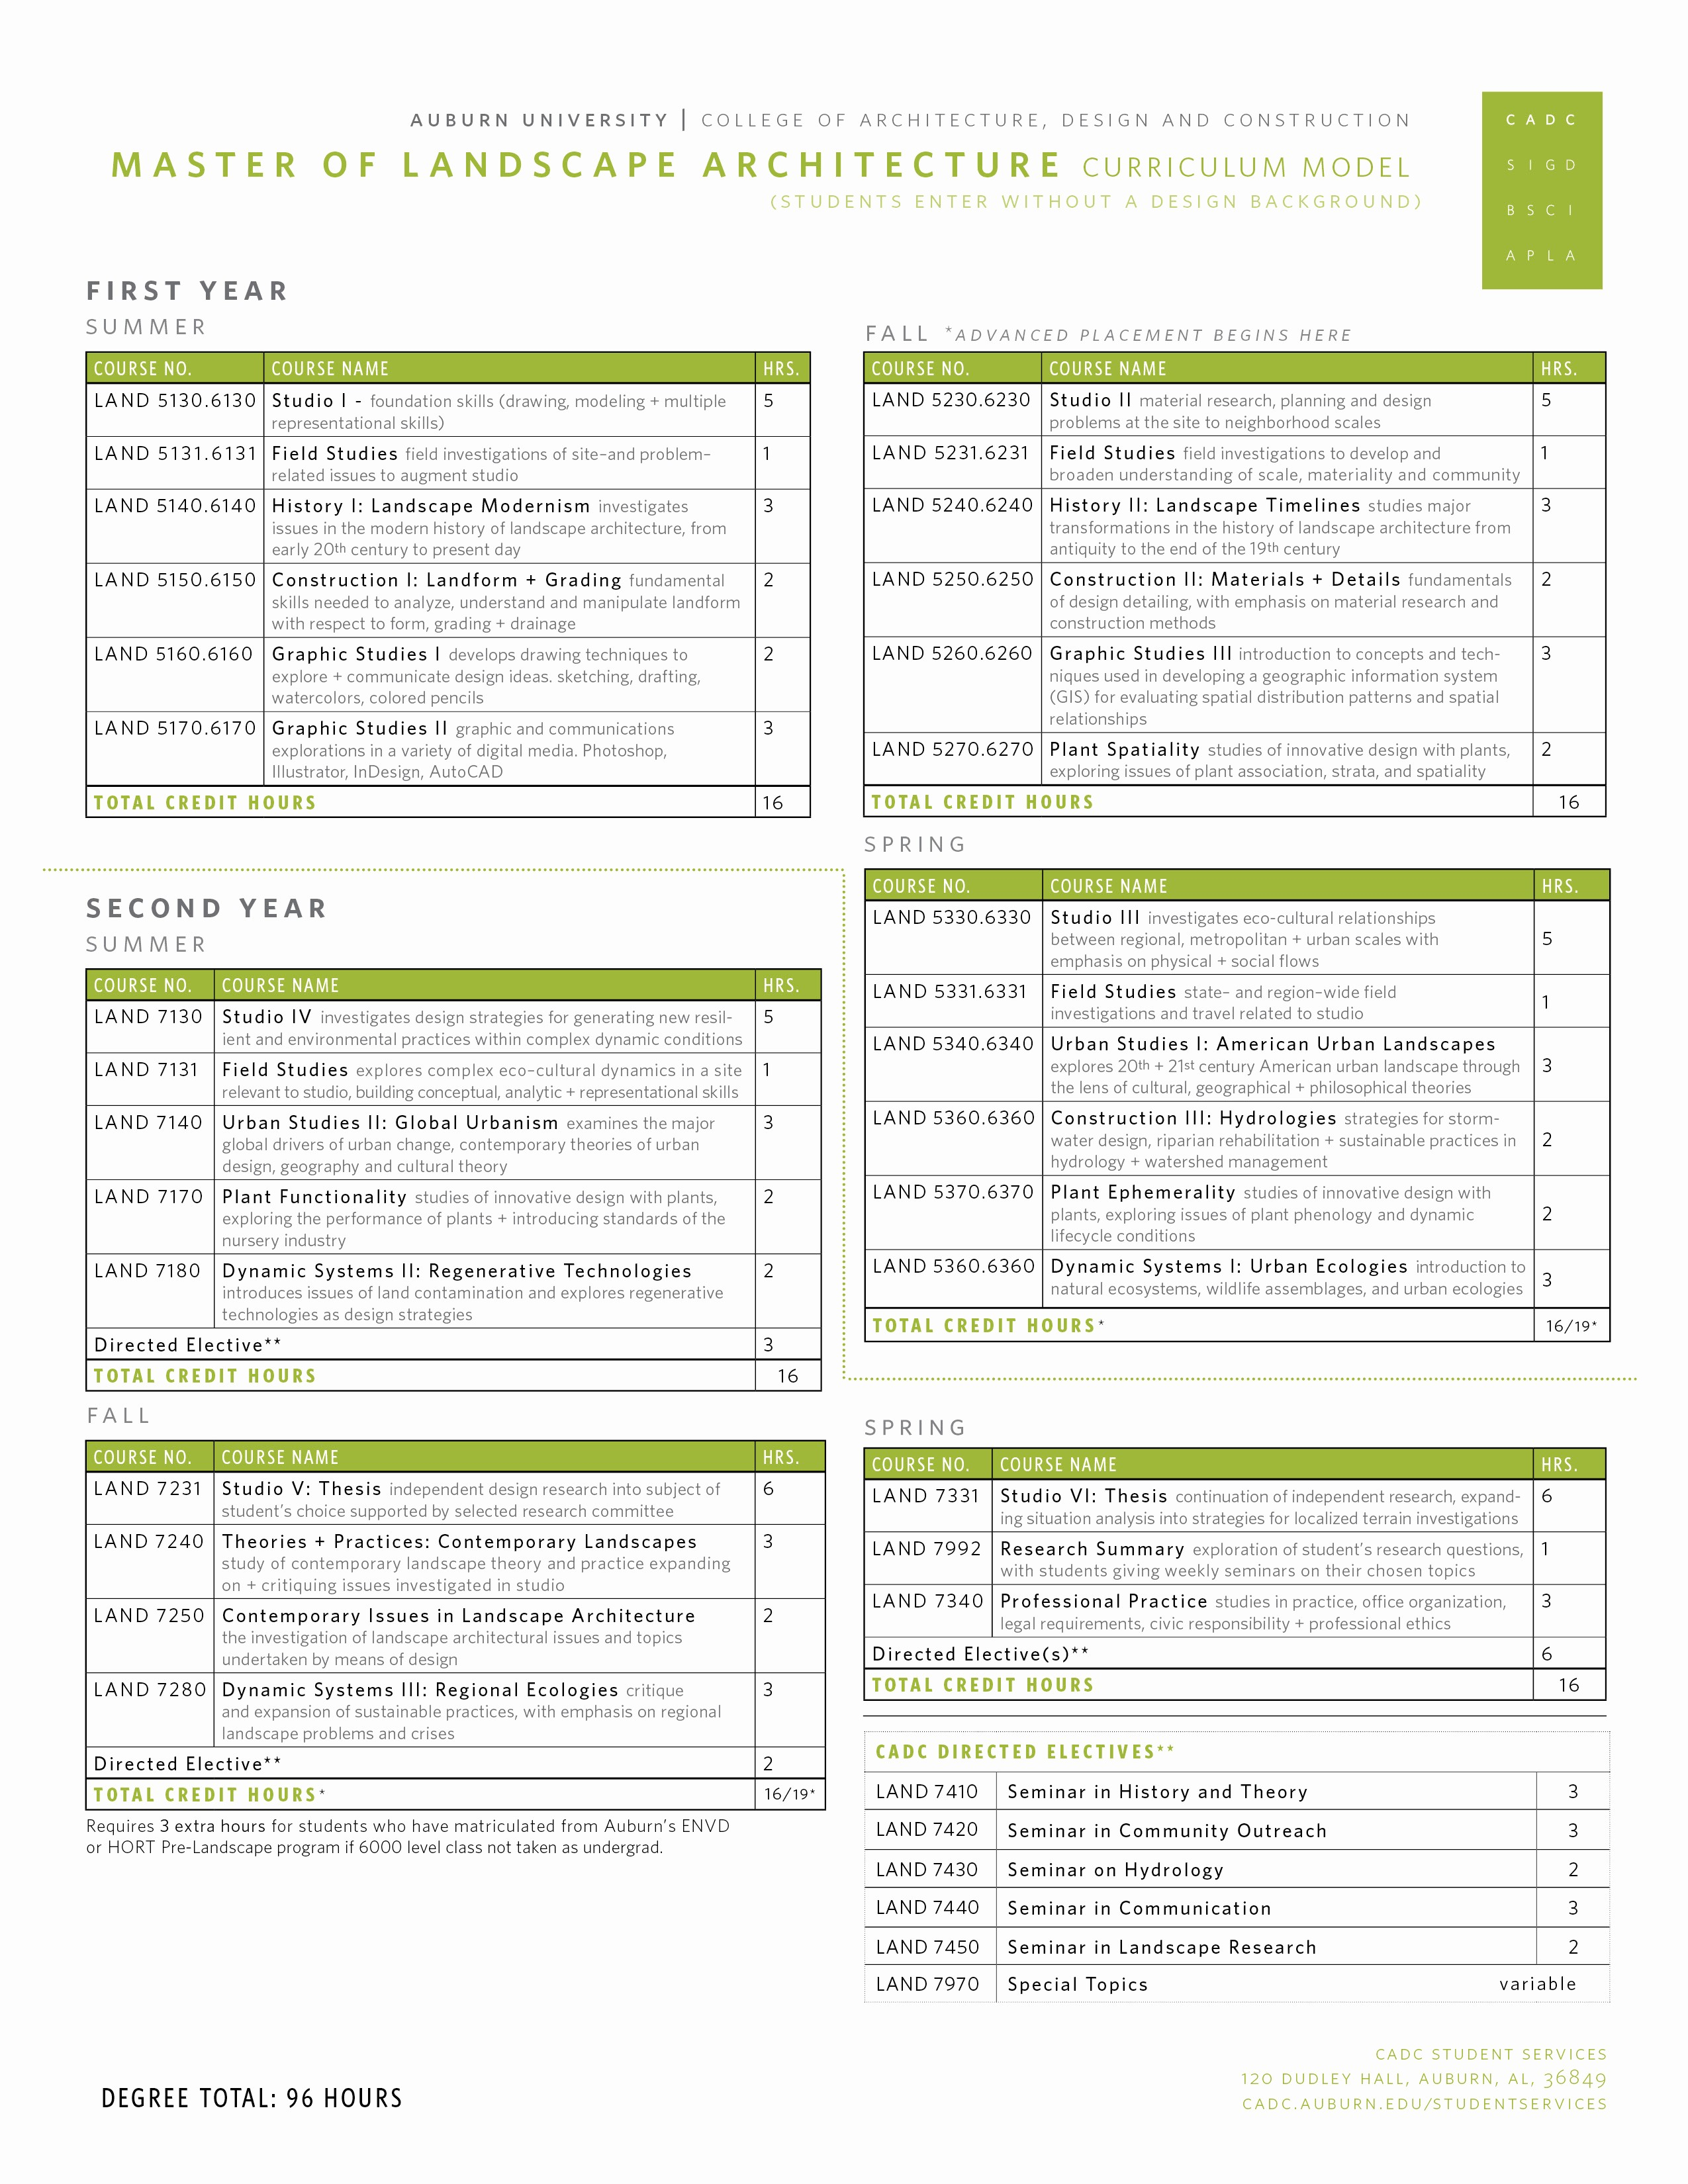 4 Year Degree Plan Template Fresh Landscape Architecture